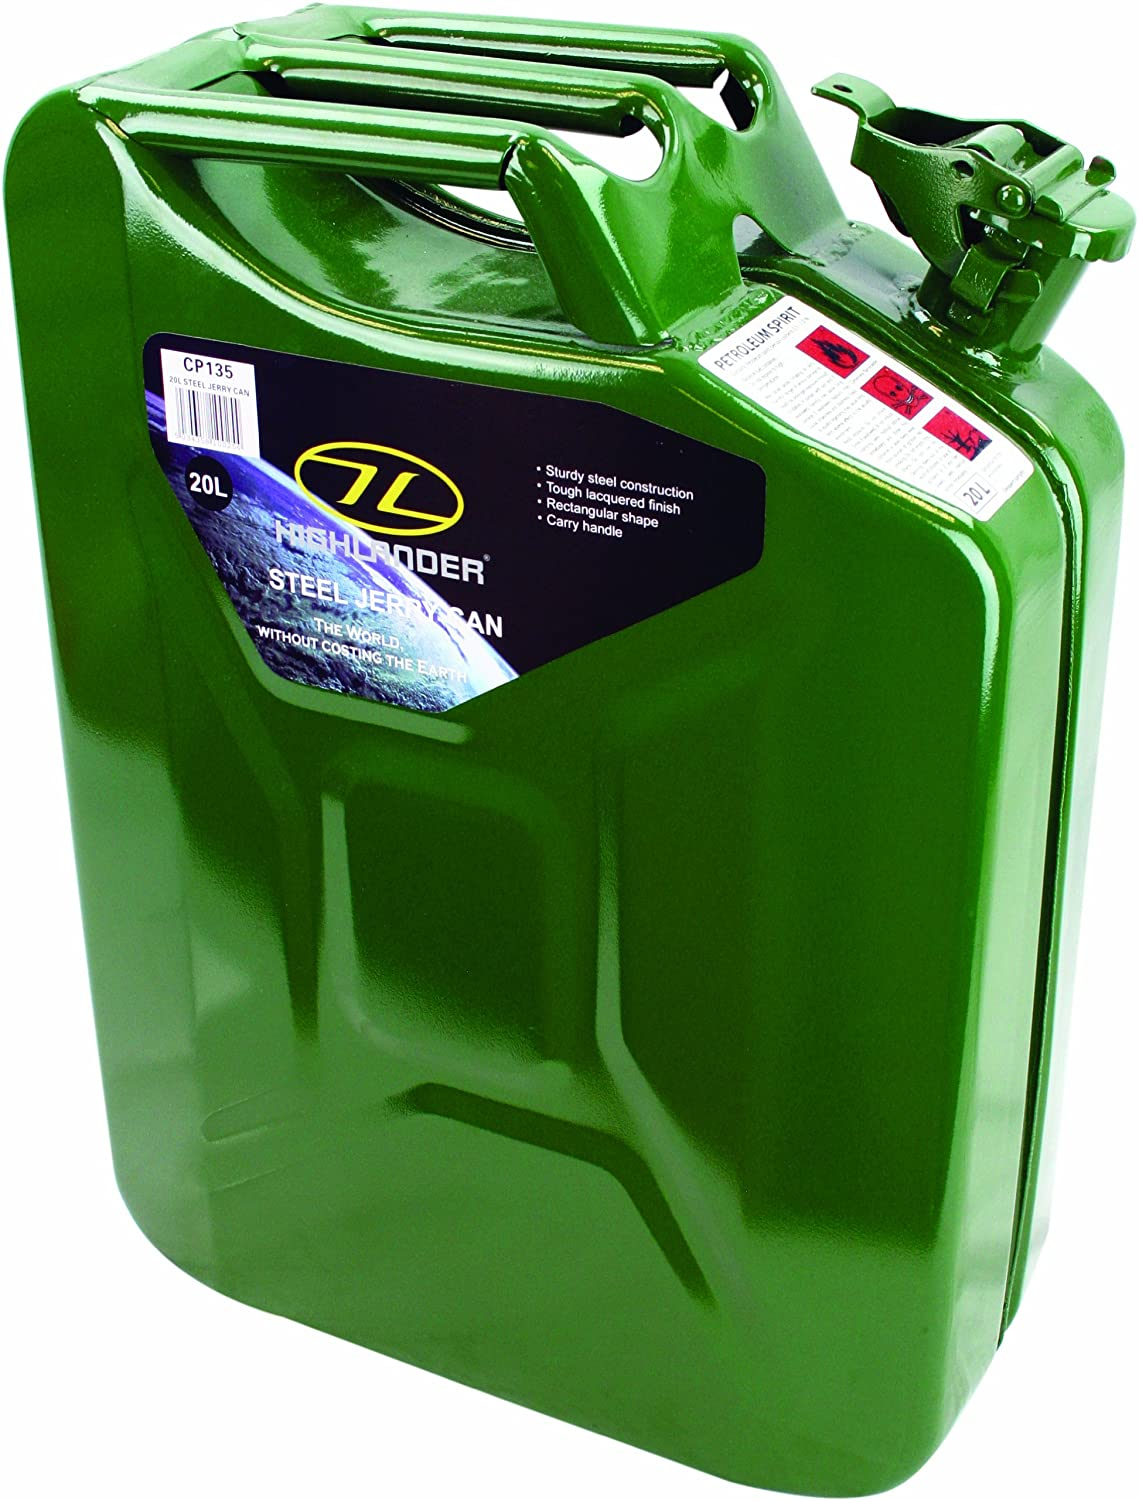 Highlander 20L LaqueROT Steel Jerry Can Carrier Water Carrier Can ee6e62